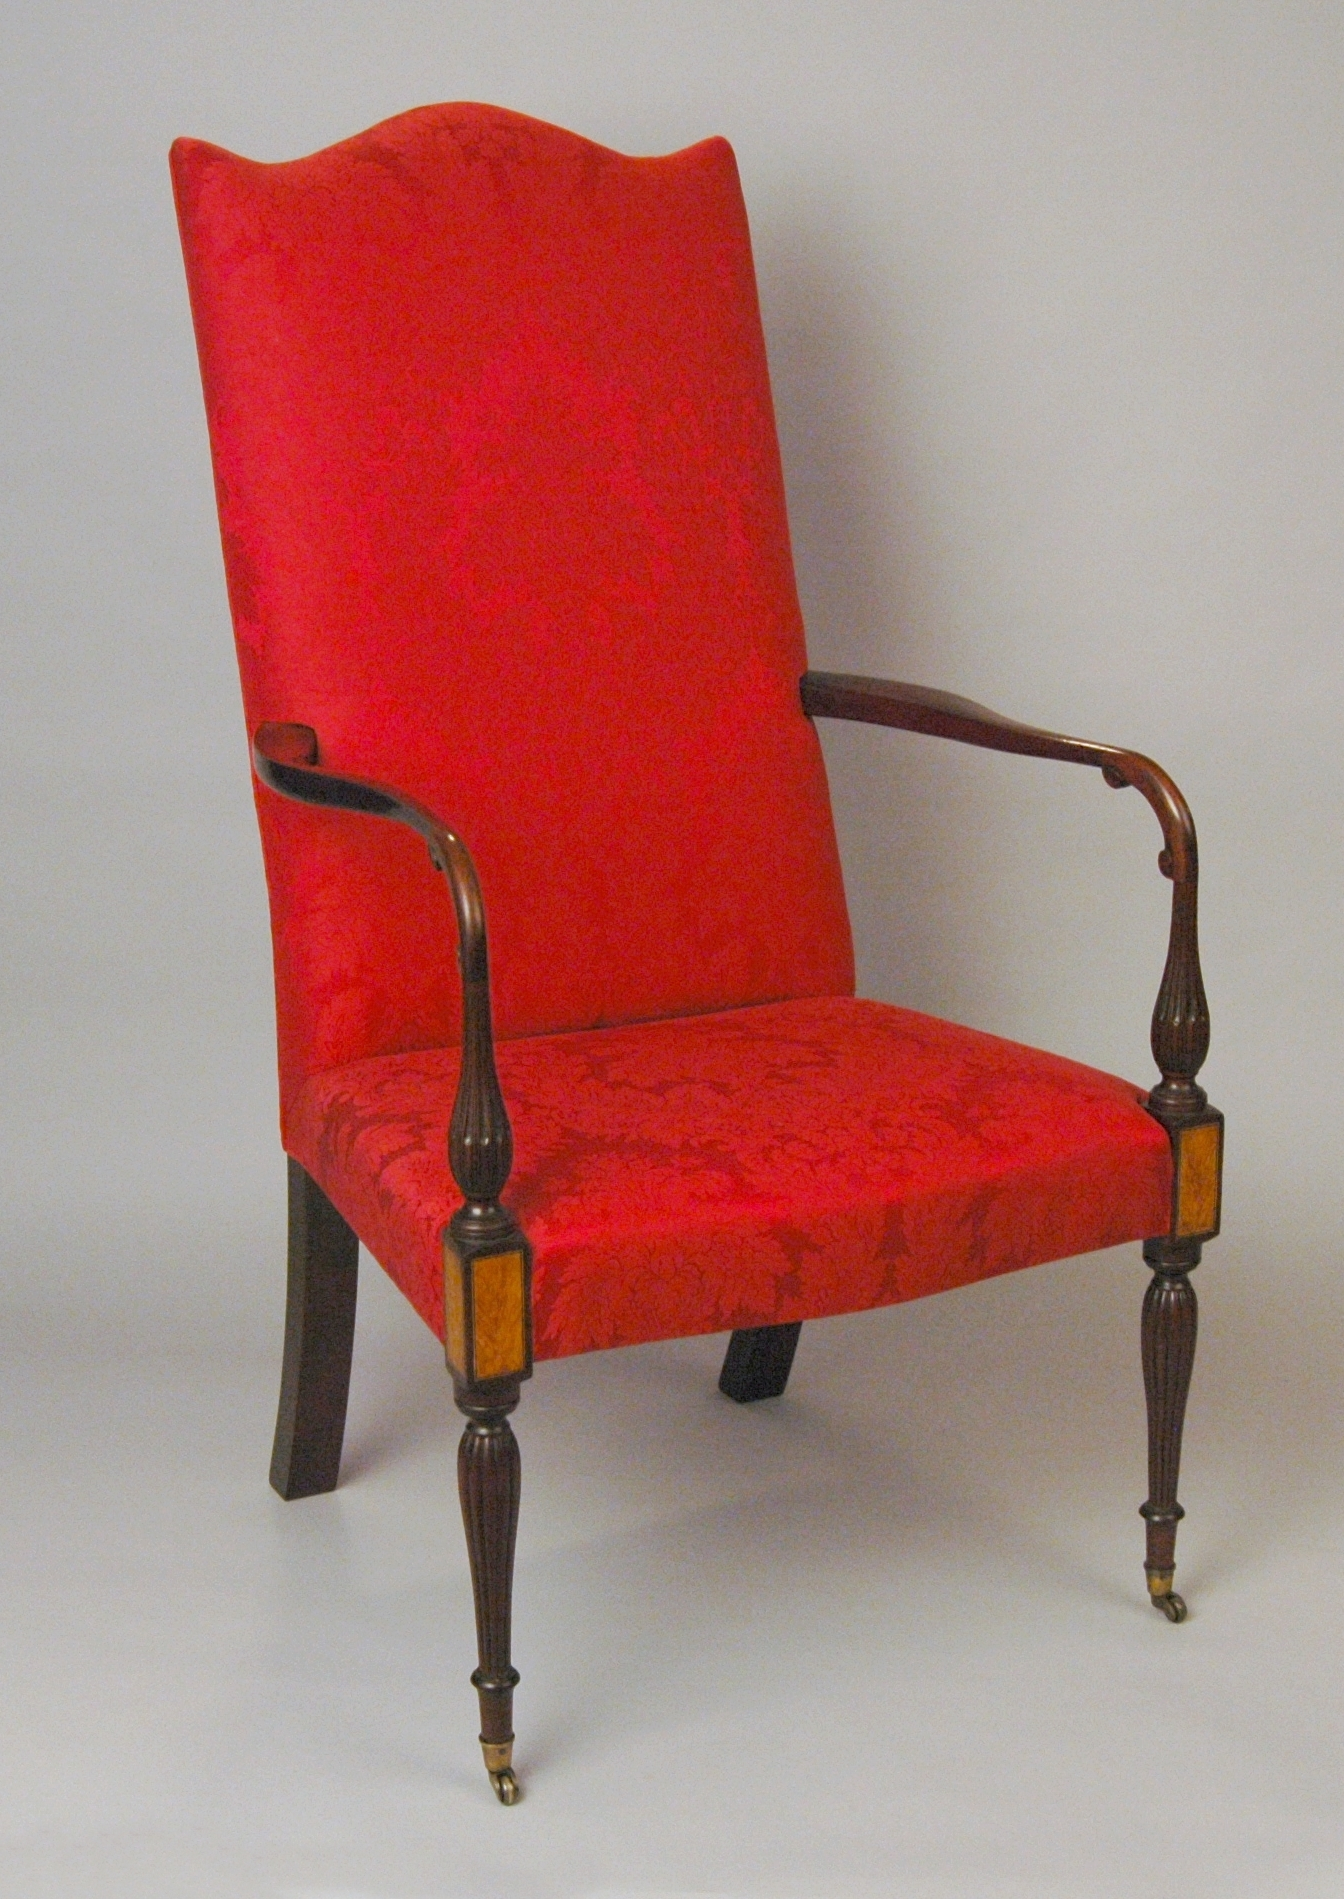 Portsmouth Lolling Chair